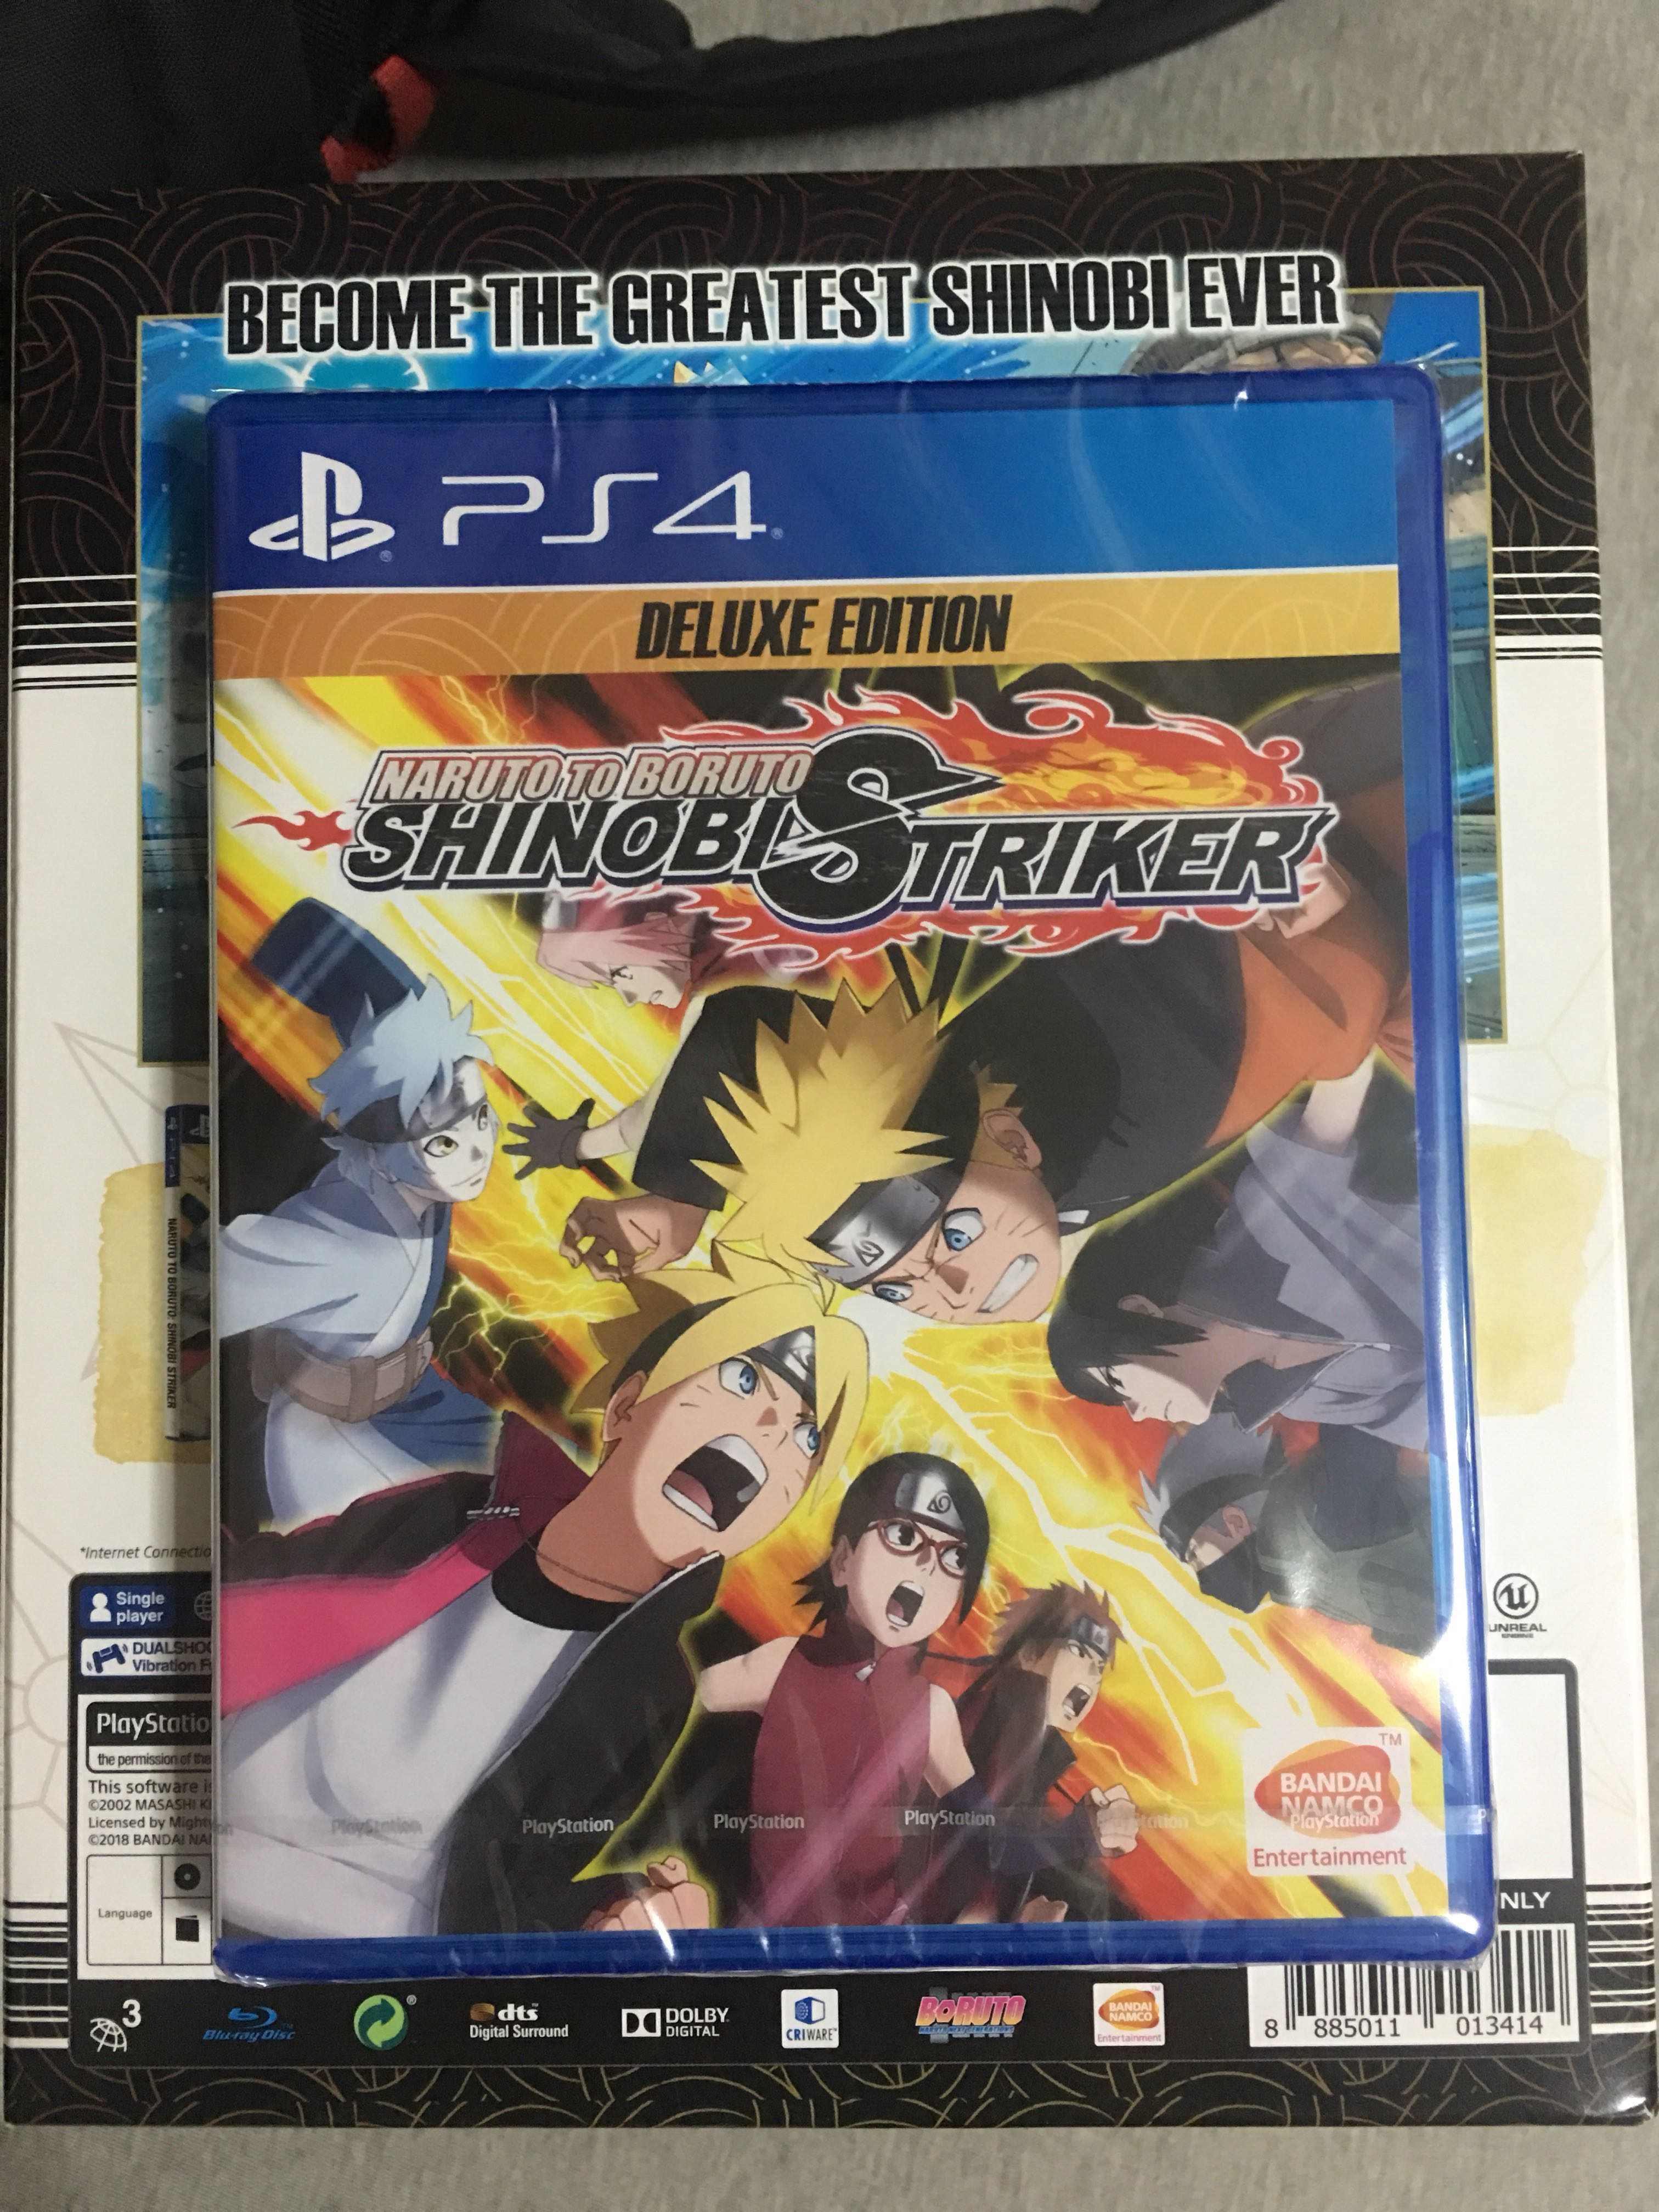 PS4 naruto to boruto shinobi striker deluxe edition, Toys